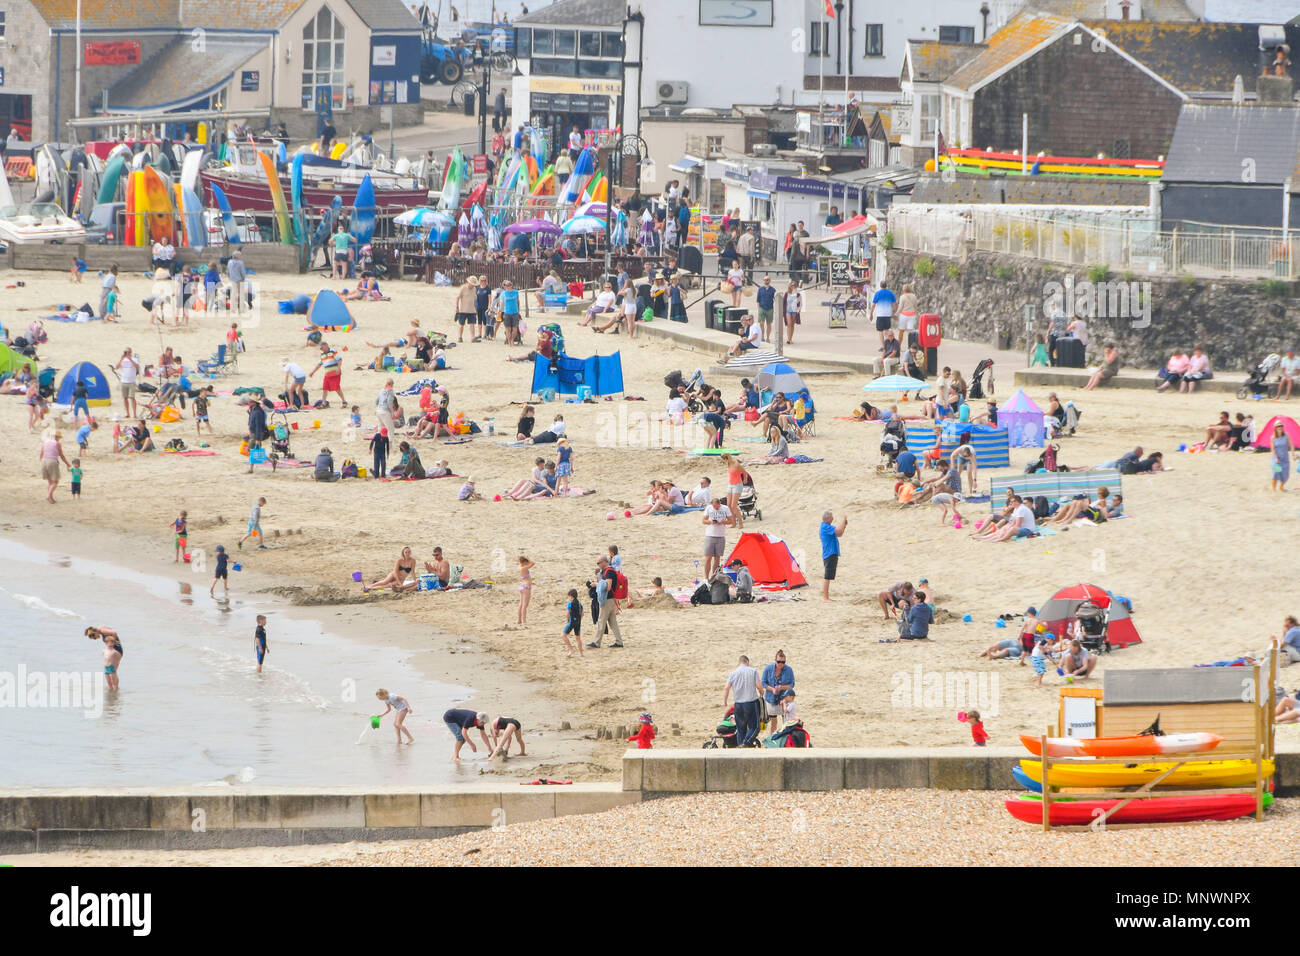 Lyme Regis, Dorset, UK.  20th May 2018. UK Weather.  Families on the beach enjoying the hazy warm spring sunshine at the seaside resort of Lyme Regis in Dorset.  Picture Credit: Graham Hunt/Alamy Live News Stock Photo